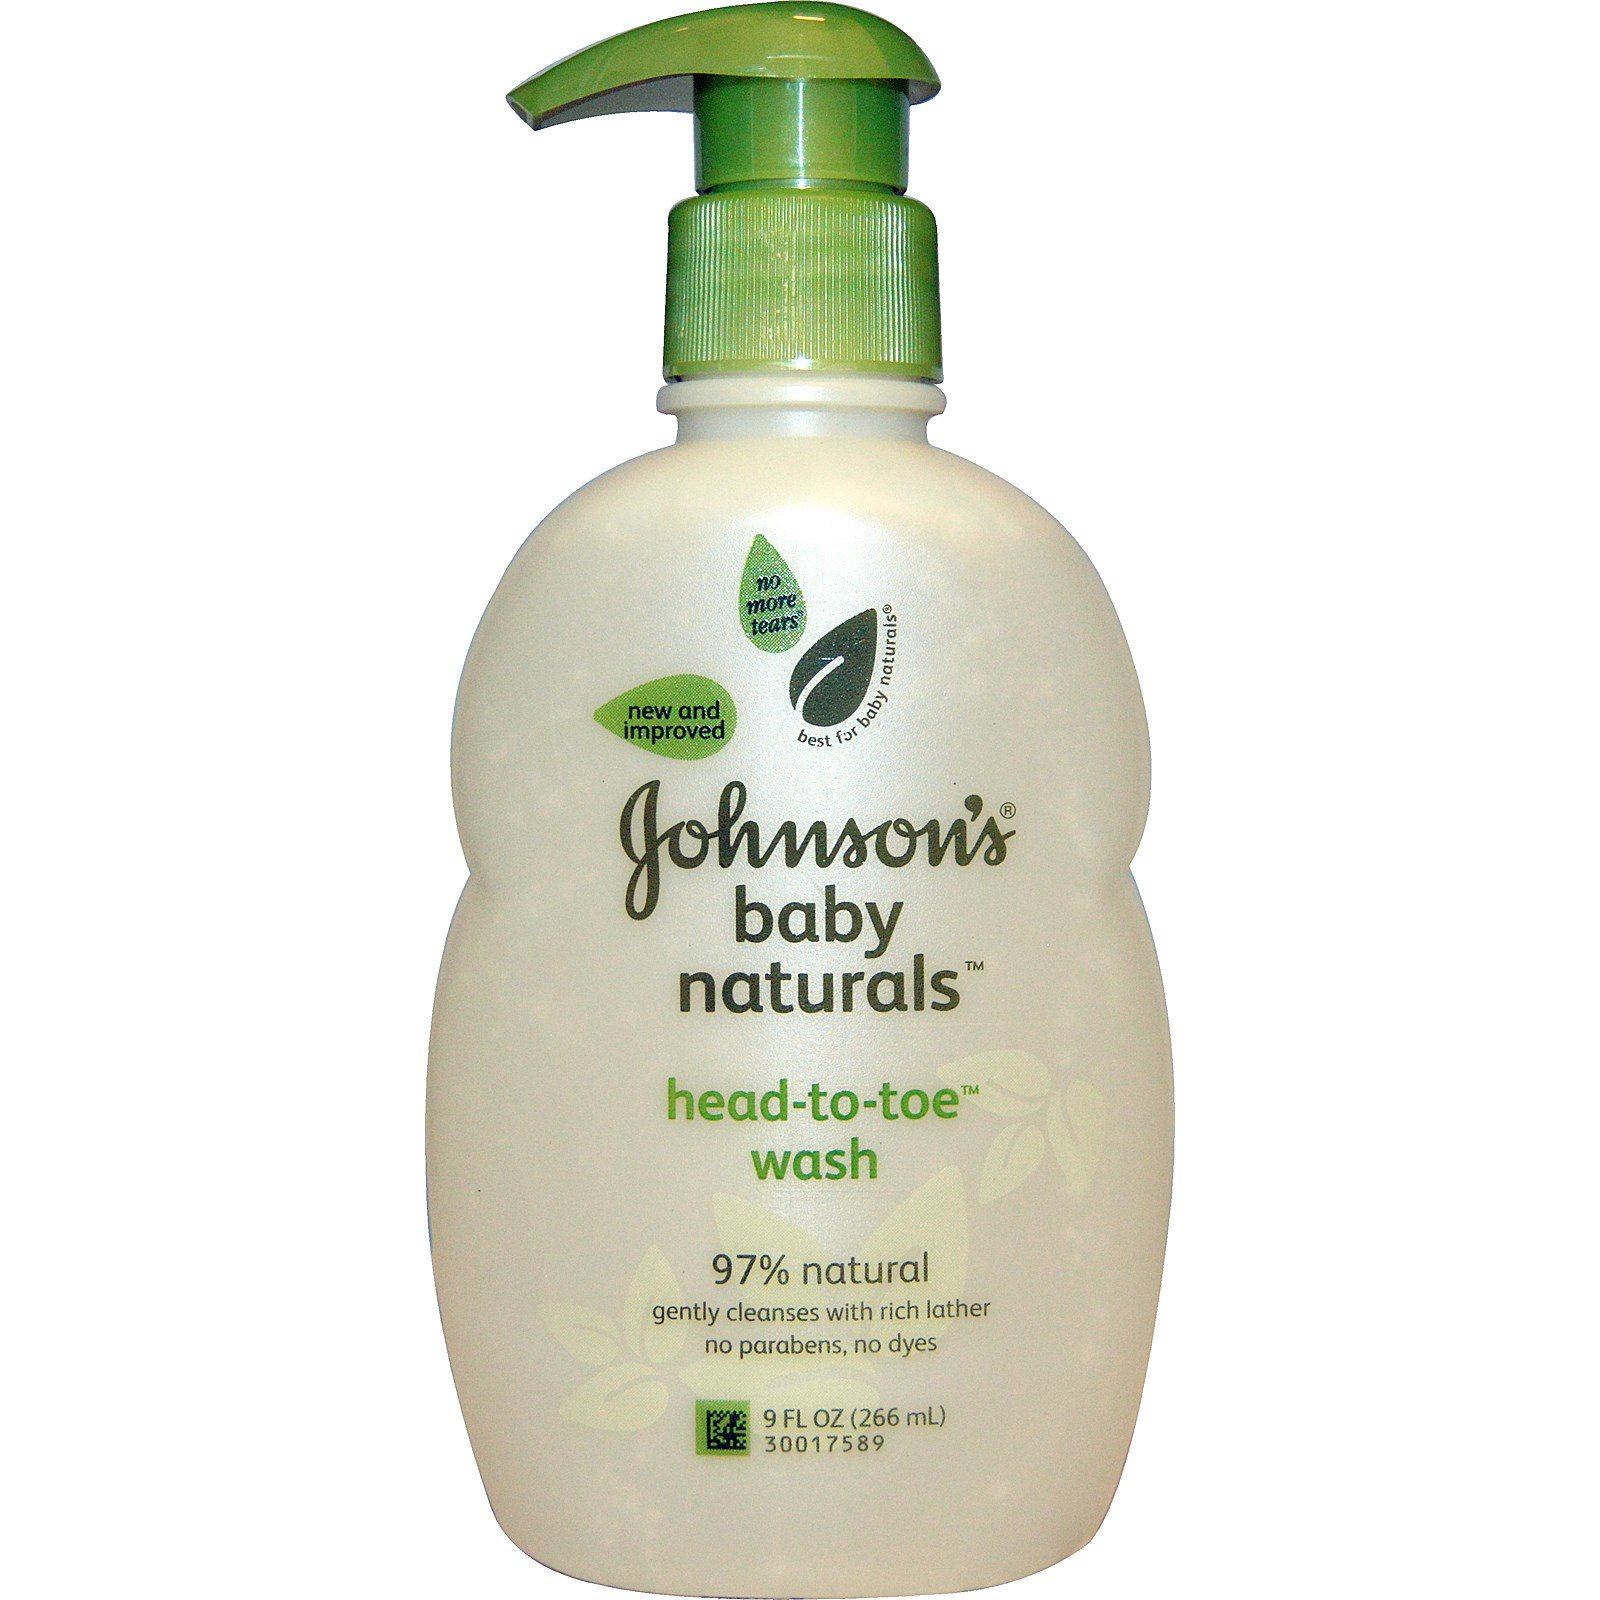 Johnson's Baby, Natural, Head-to-Toe Foaming Baby Wash, 9 fl oz (266 ml)